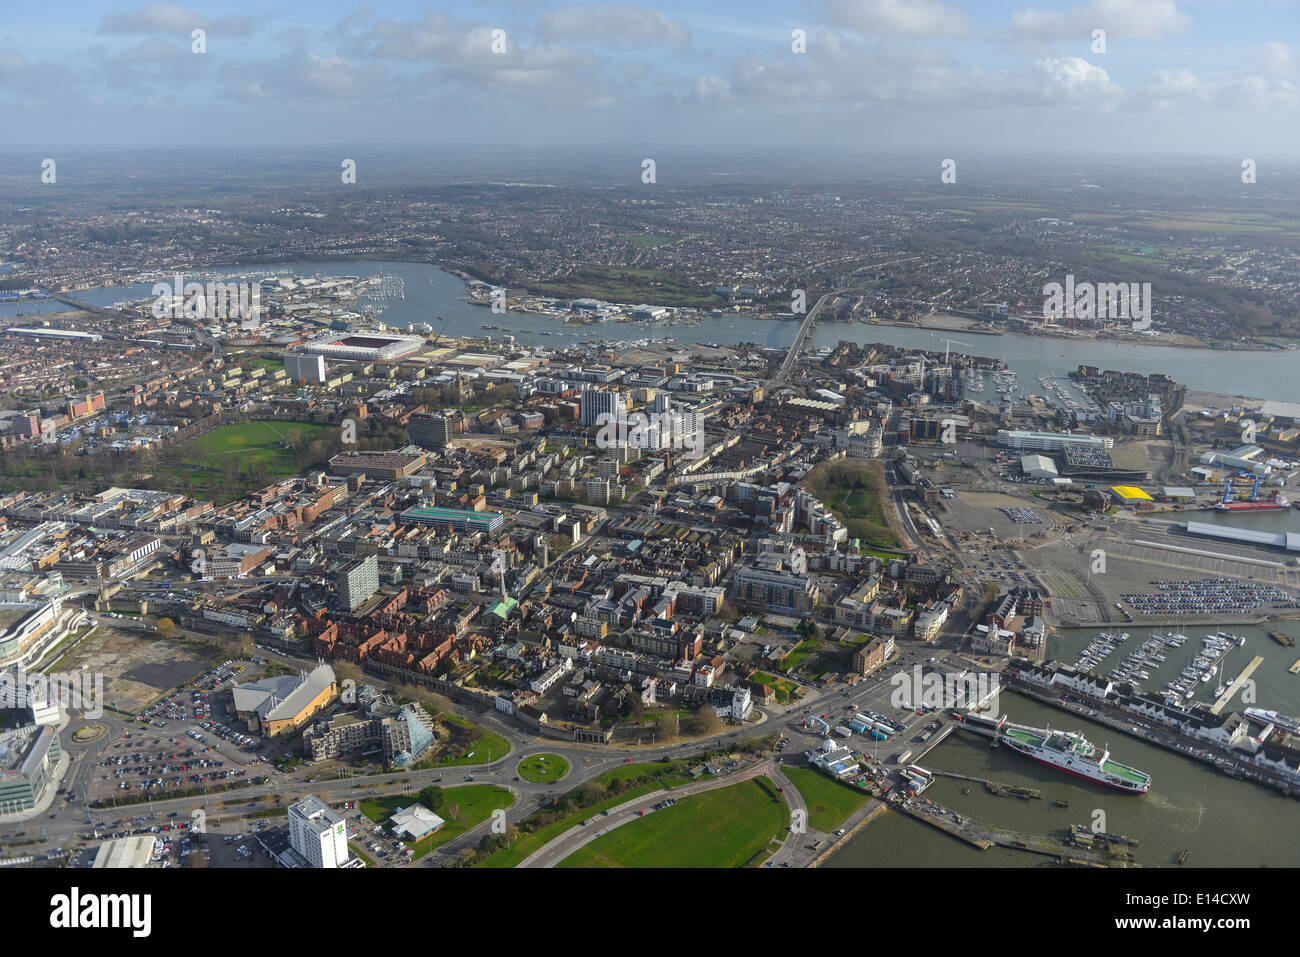 A view looking east over central Southampton showing the River Itchen and football ground Stock Photo